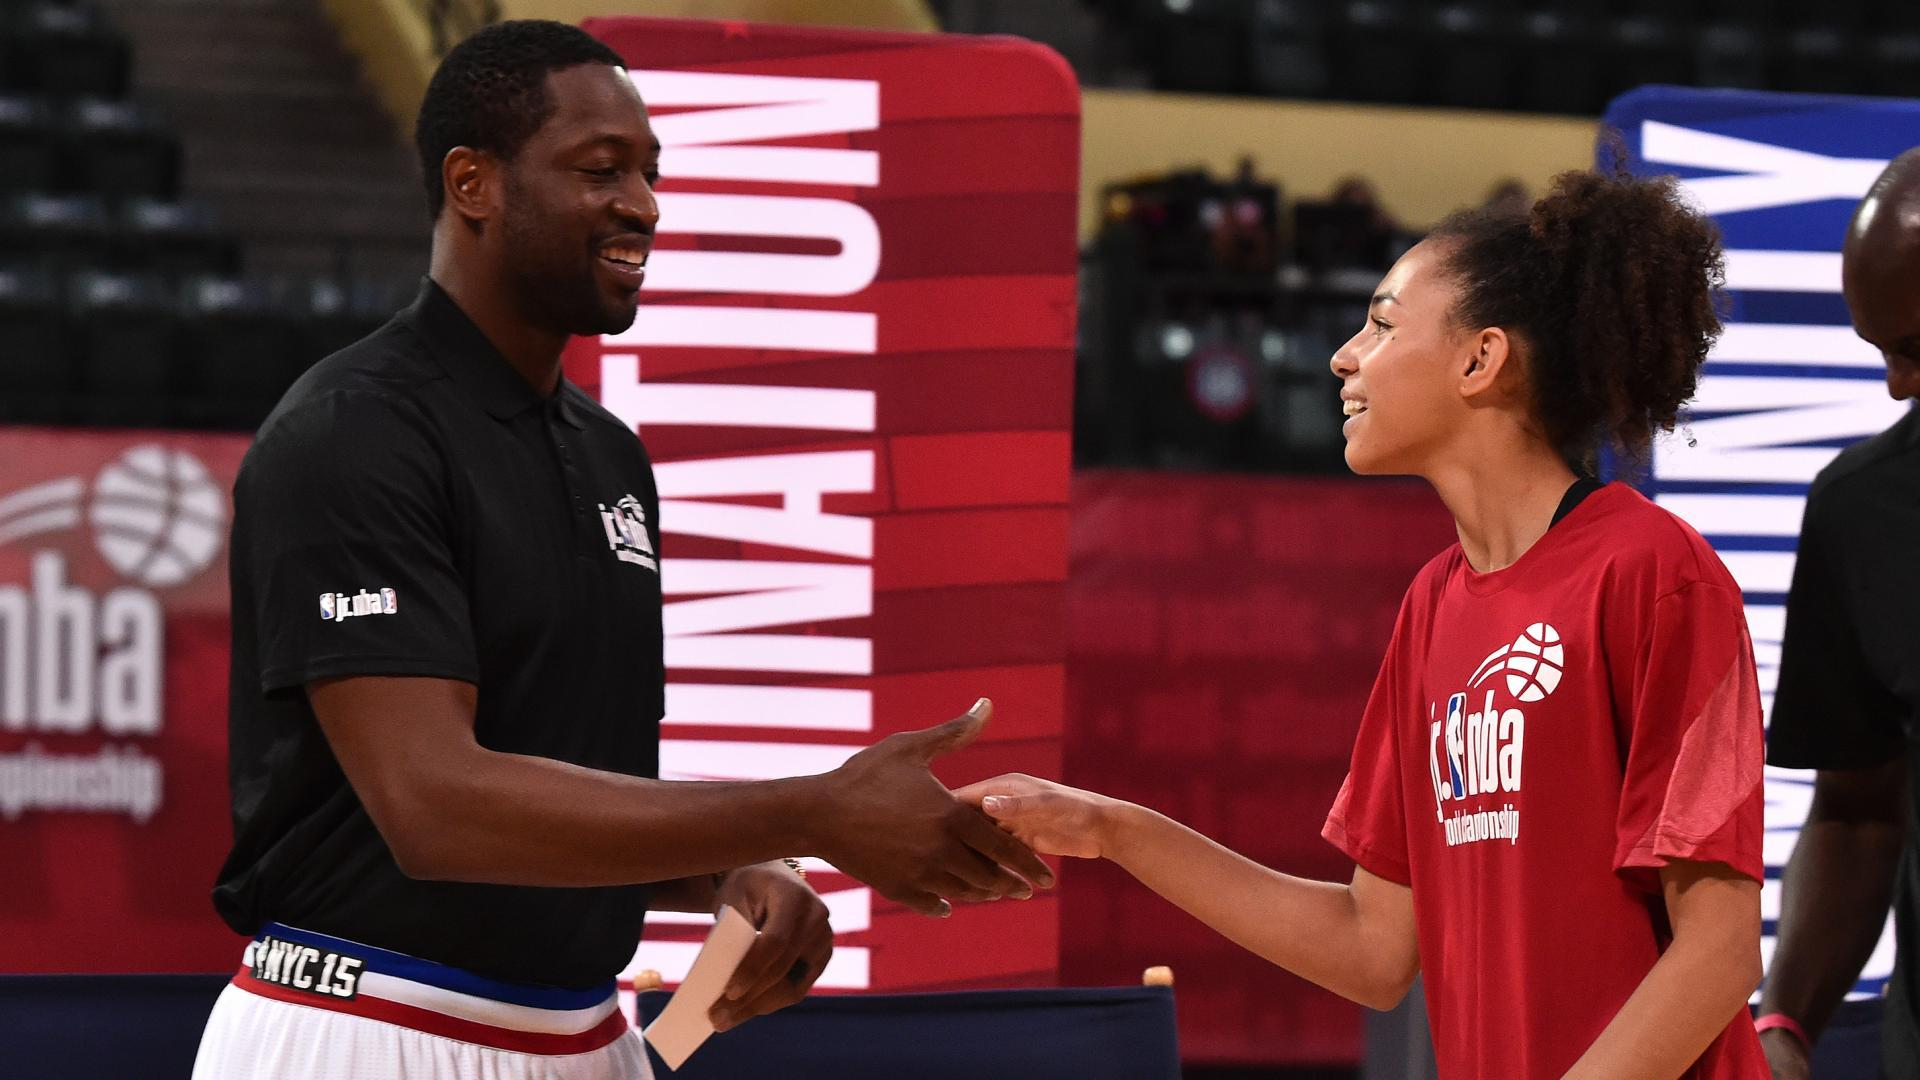 Youth from around the world to meet in Orlando for second Jr. NBA Global Championship